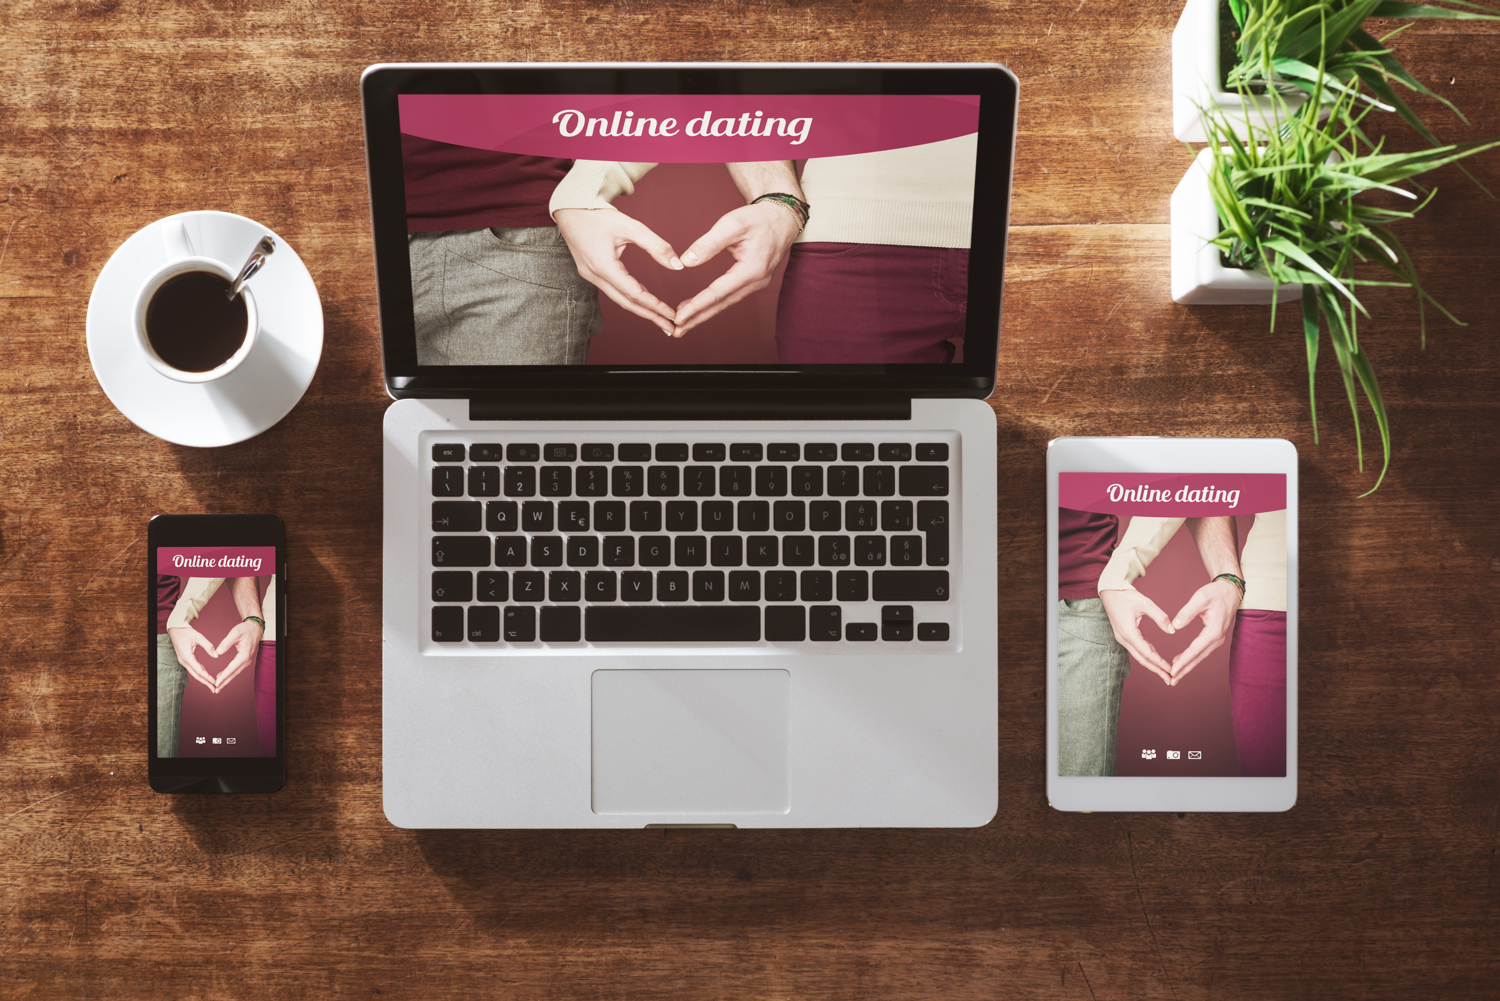 How to hack online dating sites